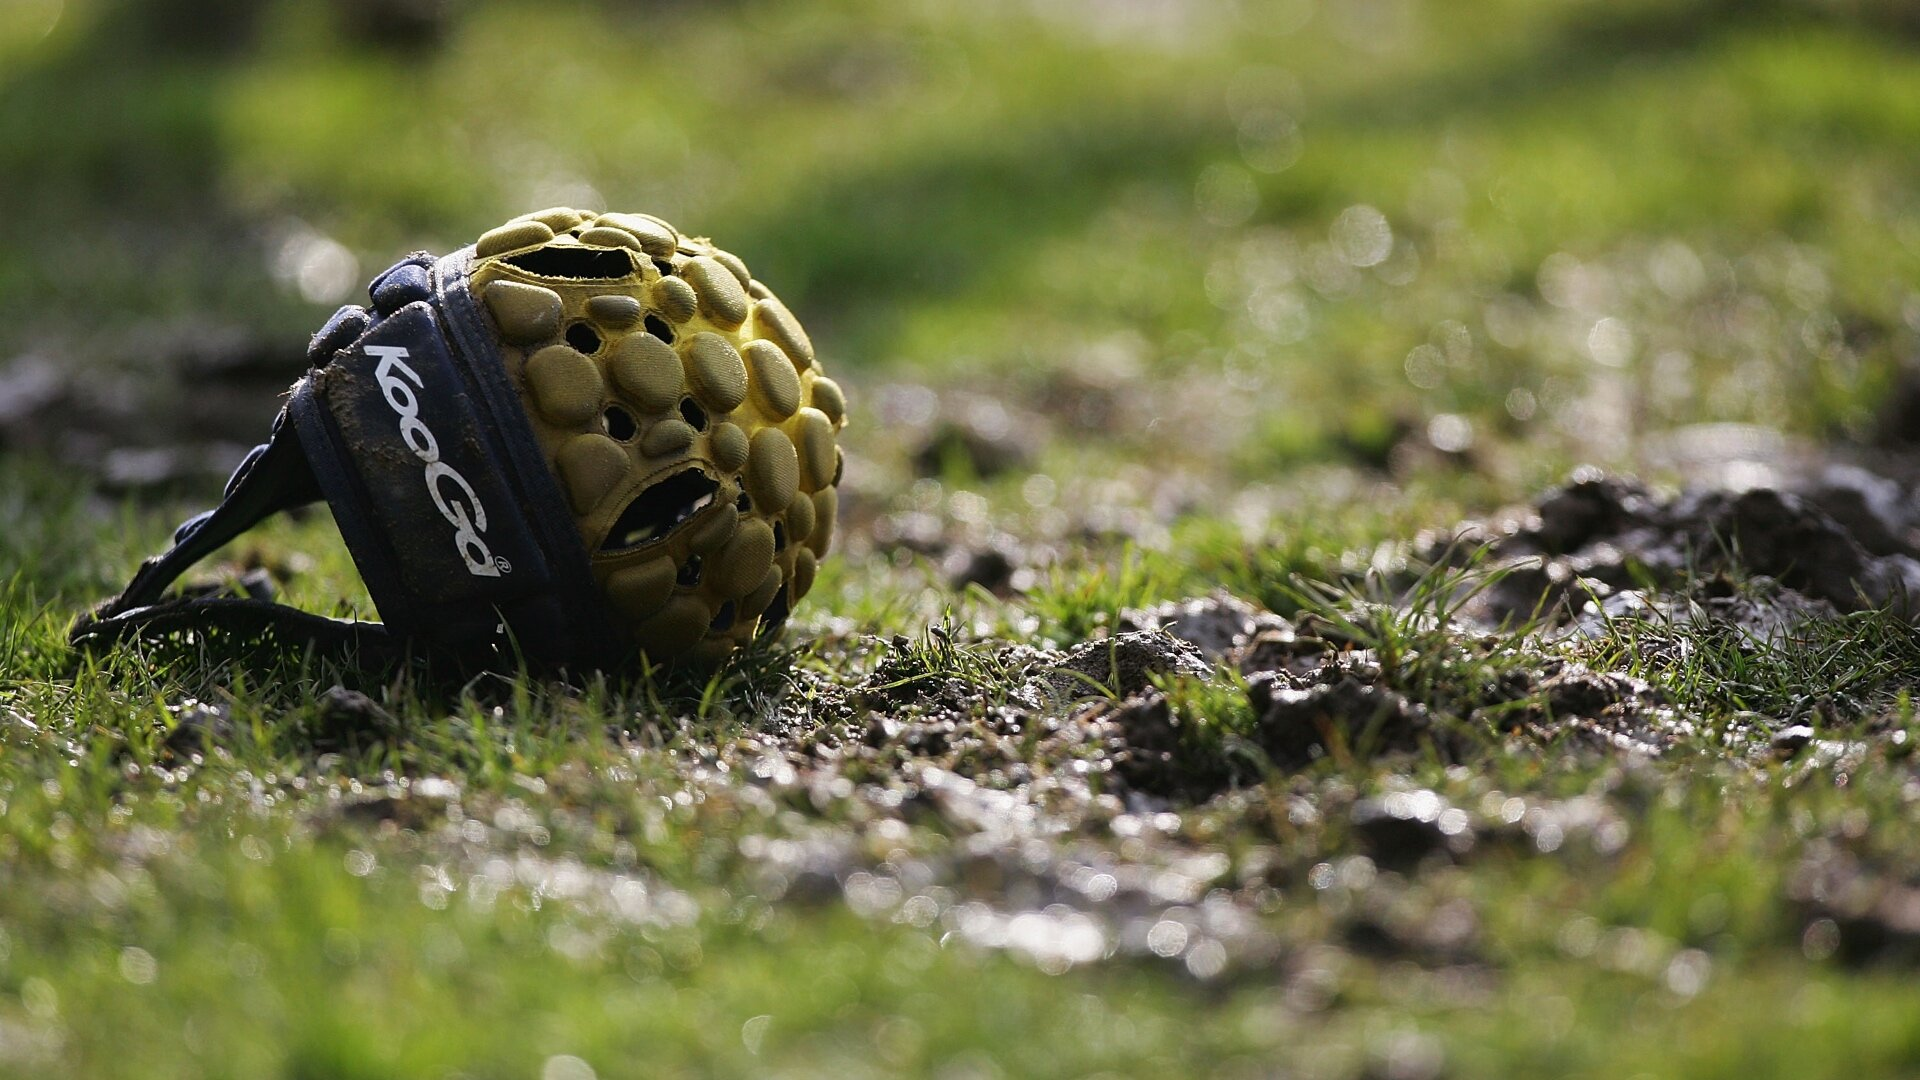 Doping England grassroots player banned from all sport for 4 years